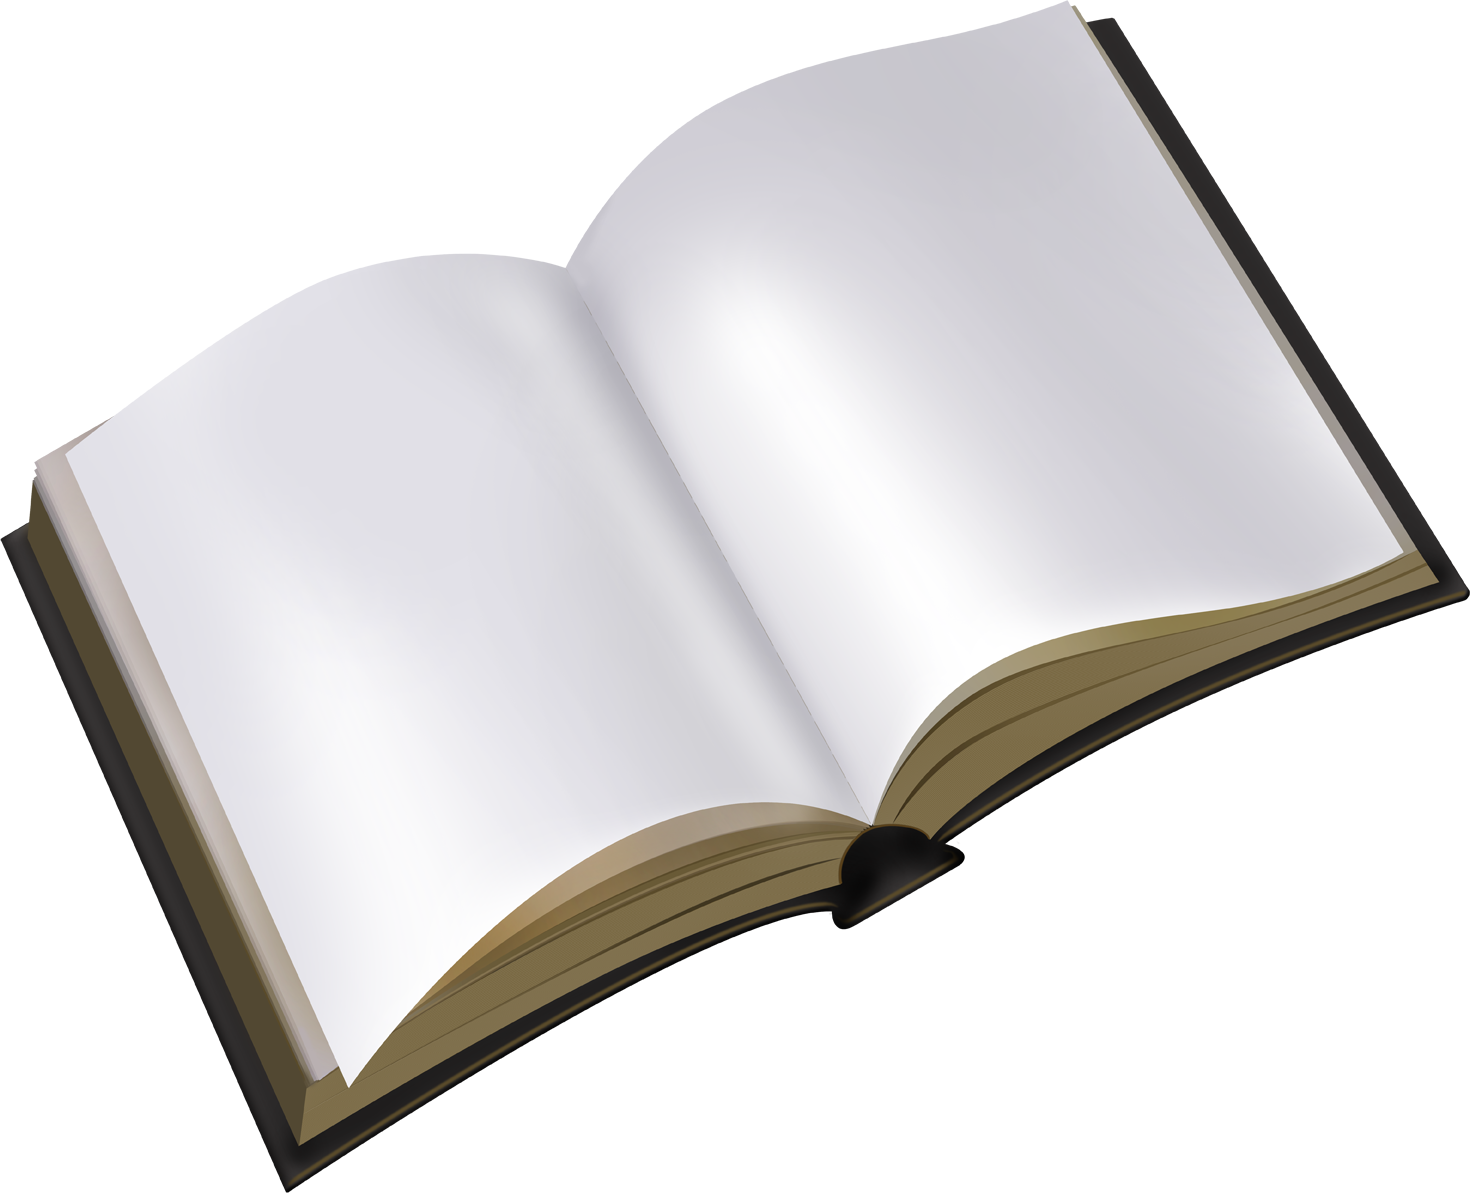 Blank open book png. No background fast lunchrock